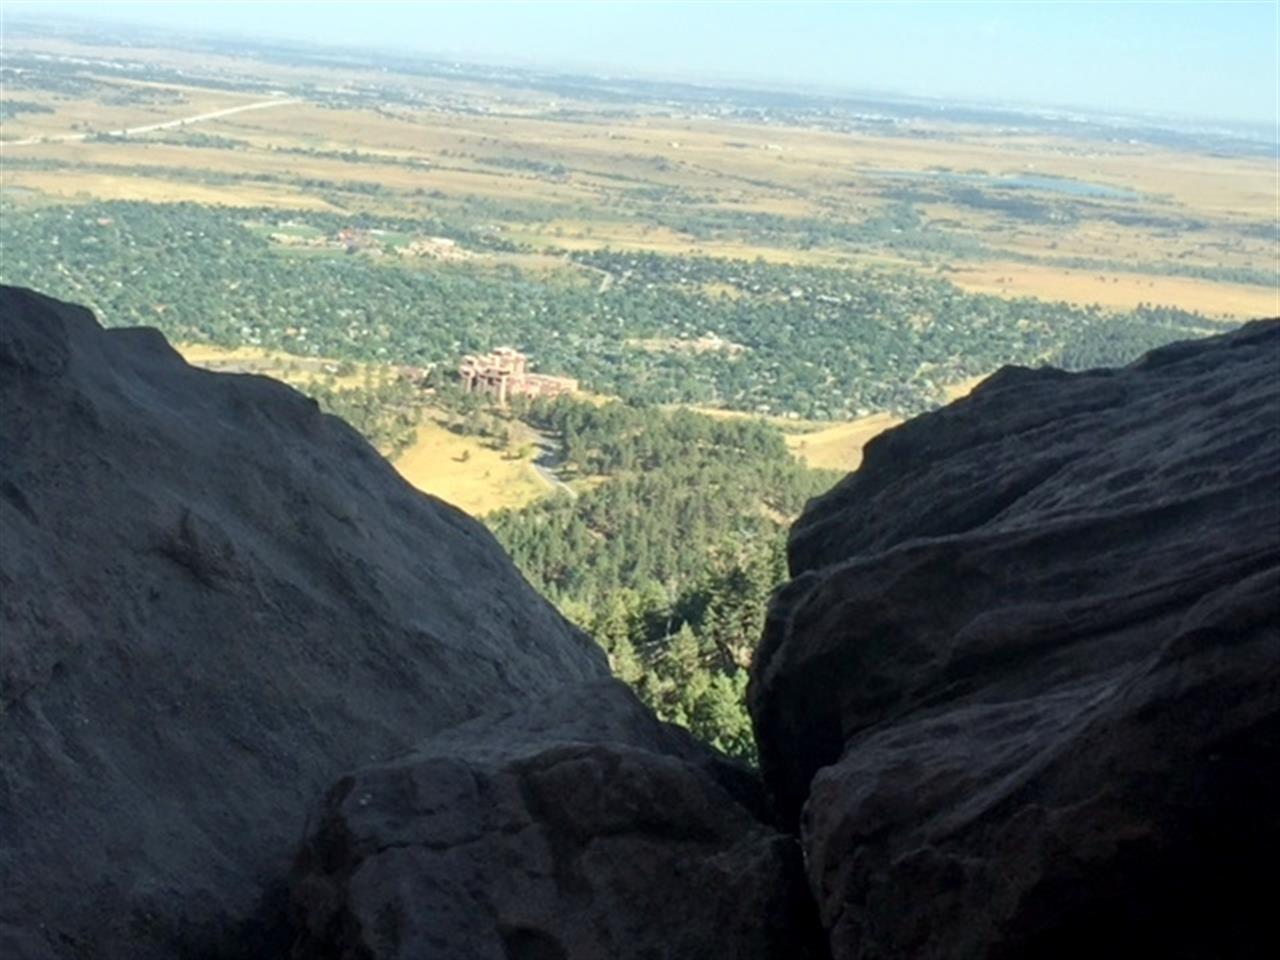 Looking down into Boulder (the building is NCAR - National Center for Atmospheric Research) from the Royal Arch, Chautauqua Park Boulder CO.